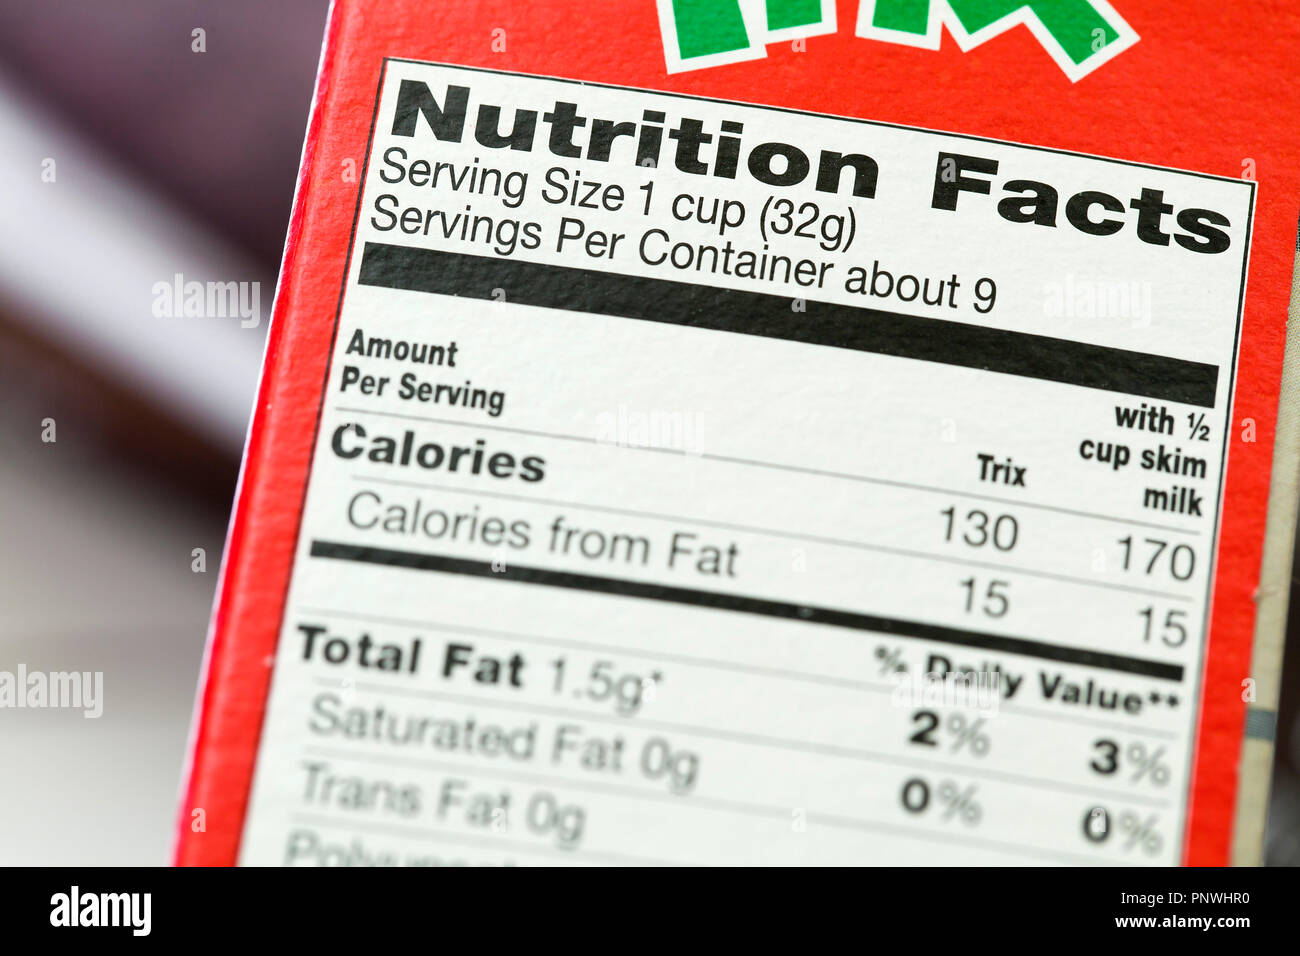 Nutrition facts label (nutrition information) on cereal box - USA - Stock Image